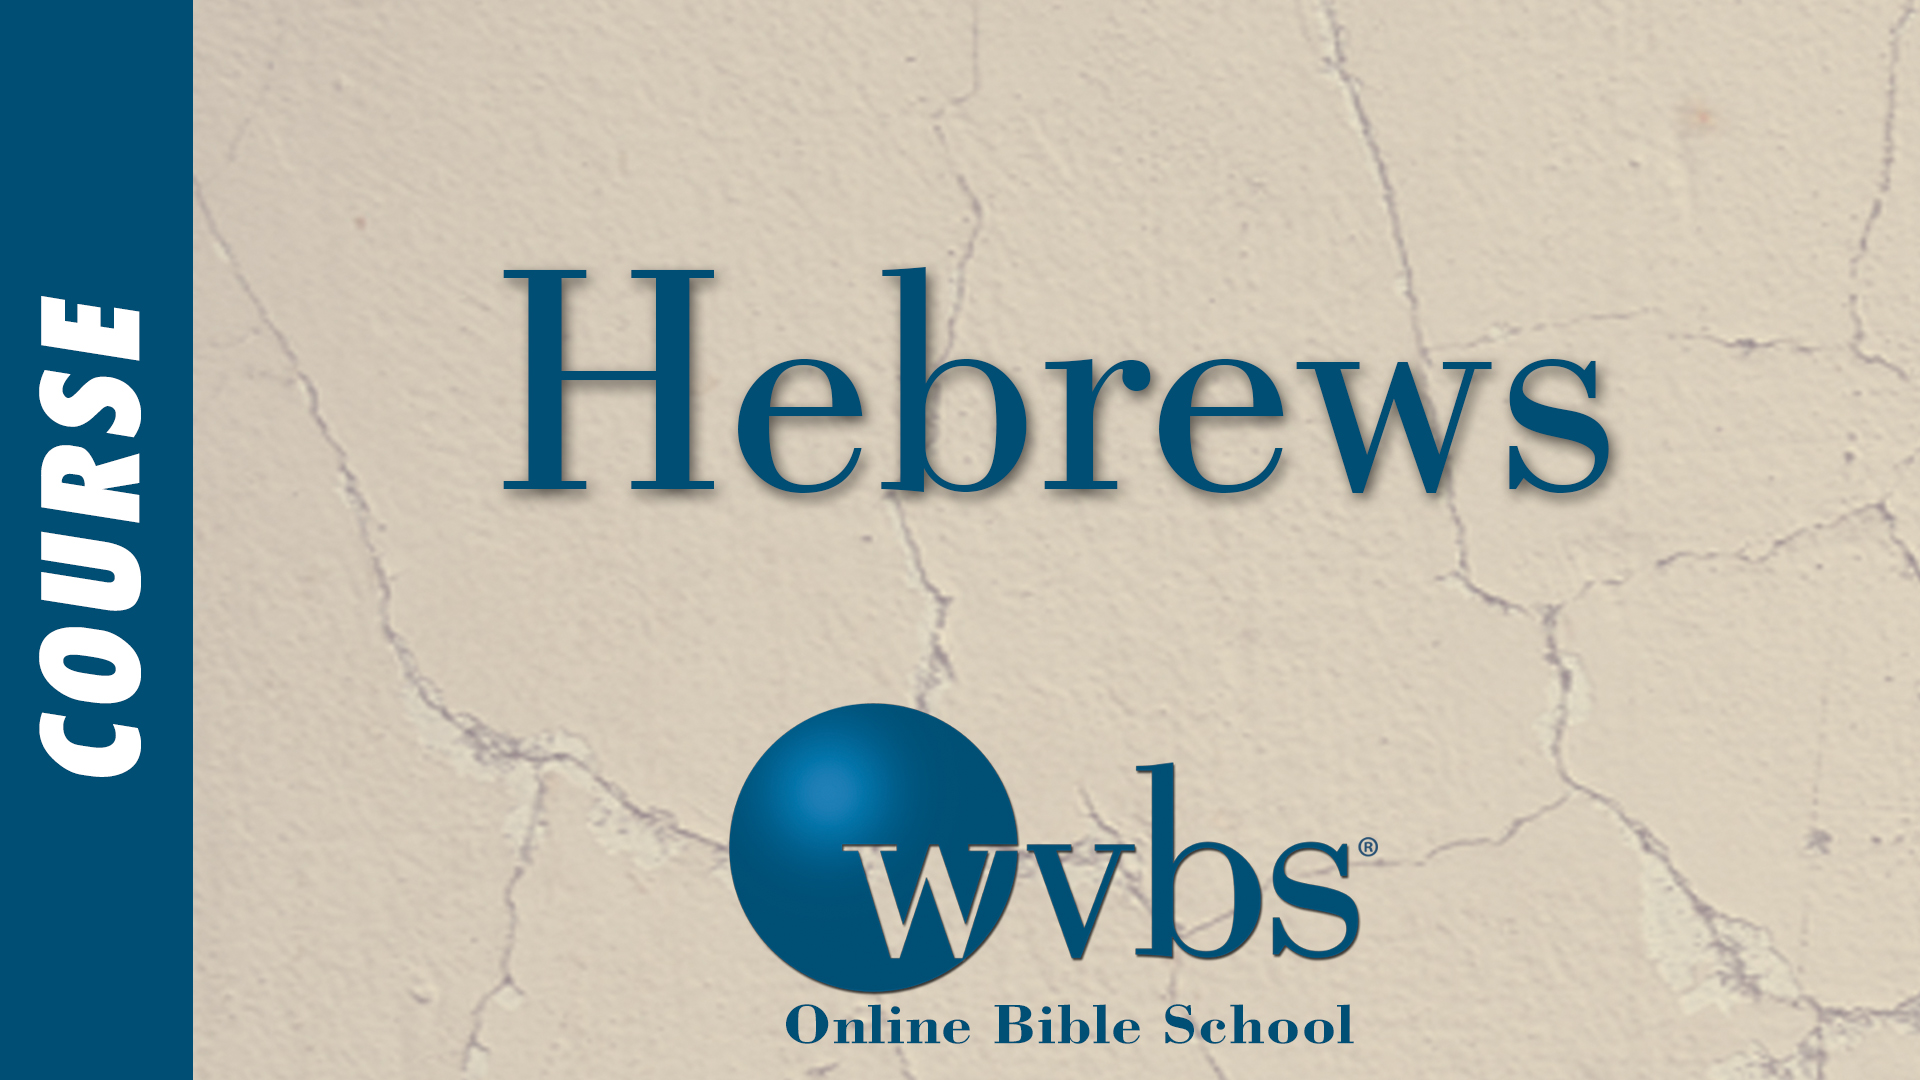 Hebrews (Online Bible School)